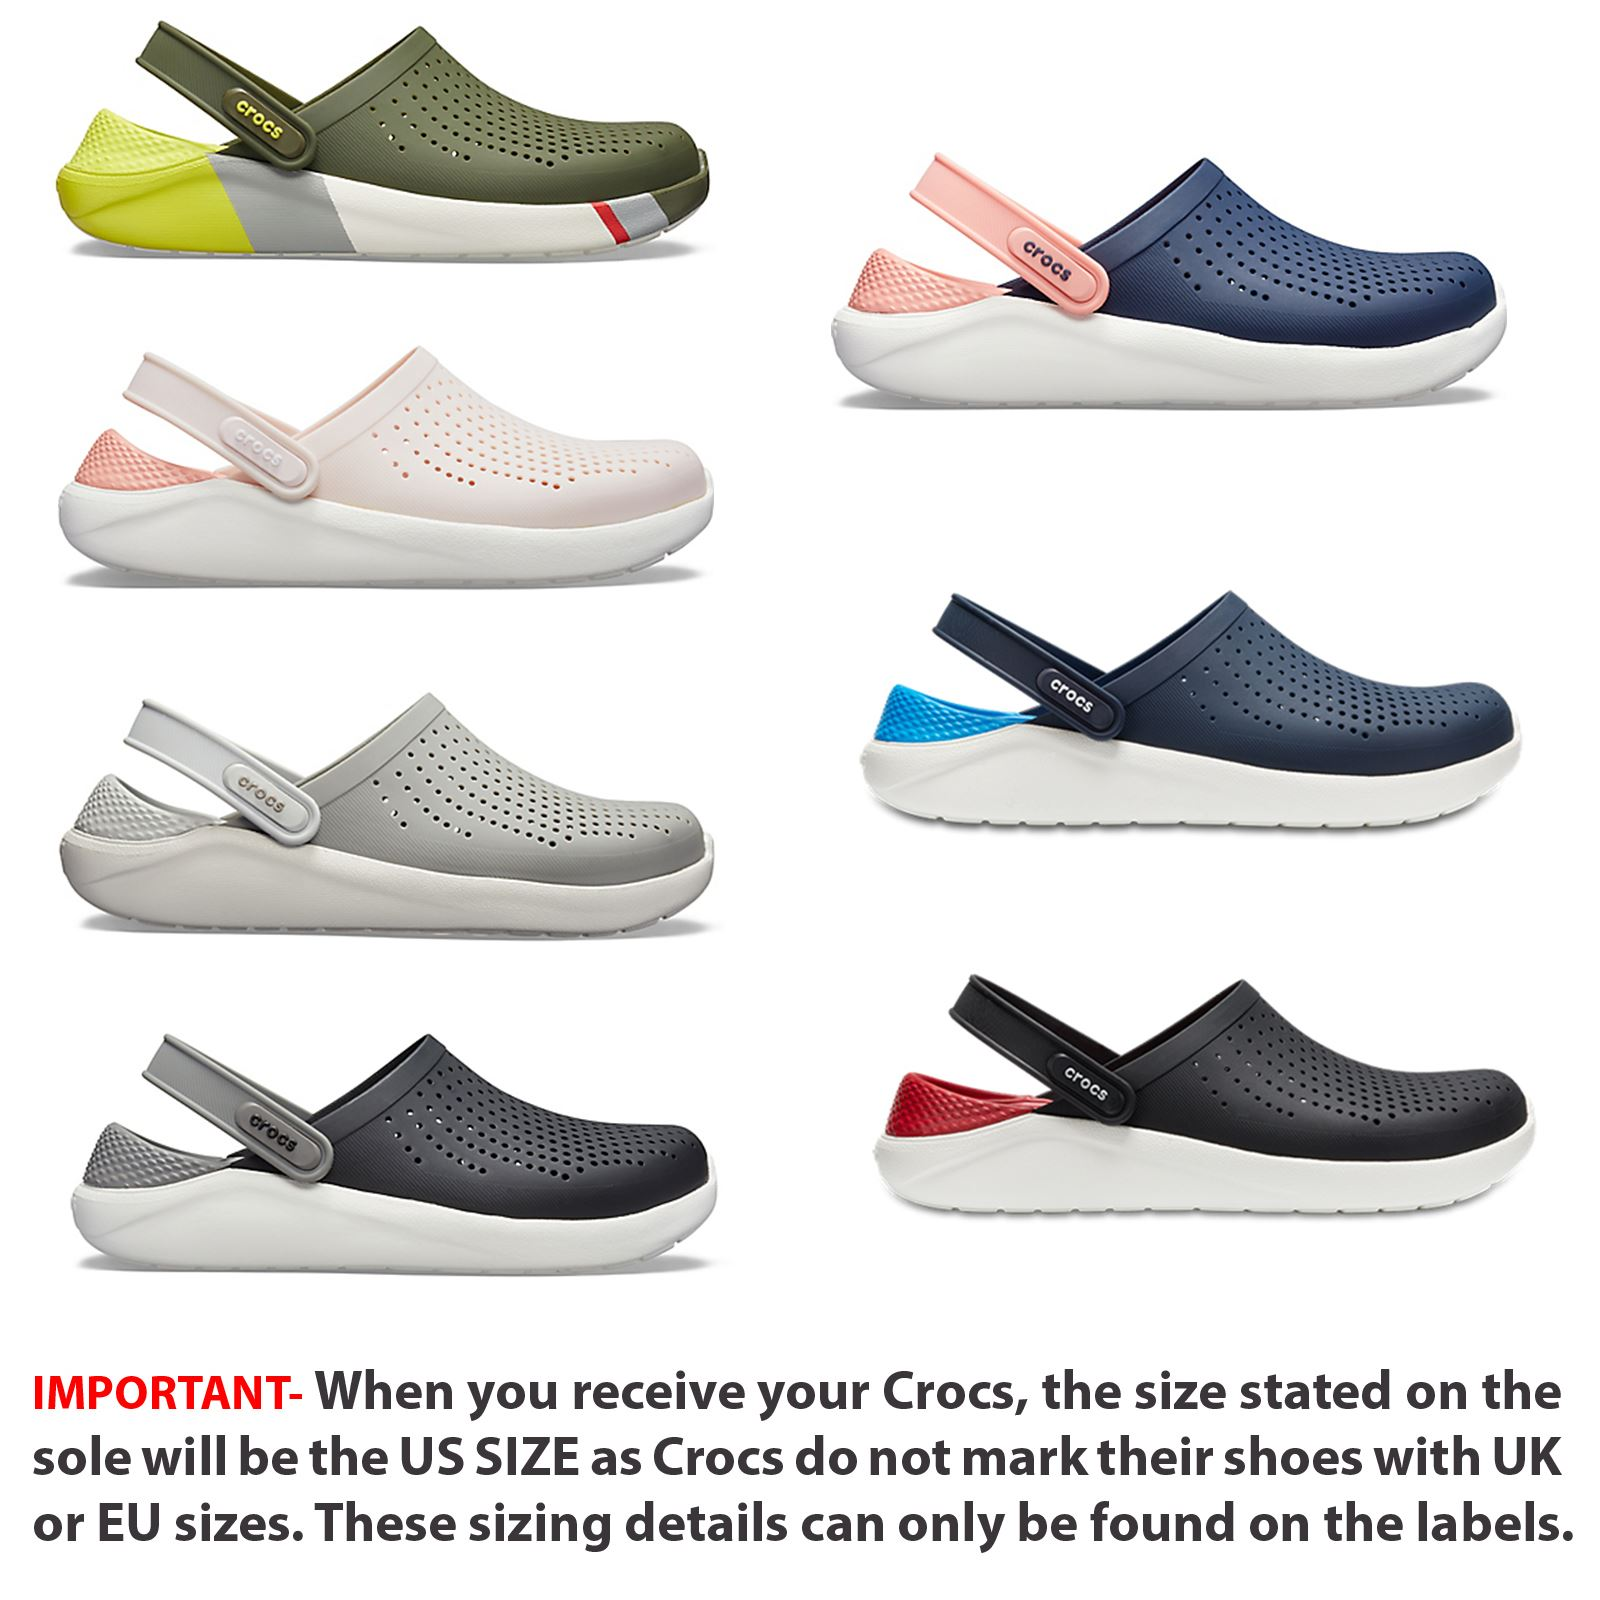 amazing price shop for authentic unequal in performance Details about Crocs Lite Ride Relaxed Fit Clog Shoes Sandals Black, Grey,  White & Blue 204592